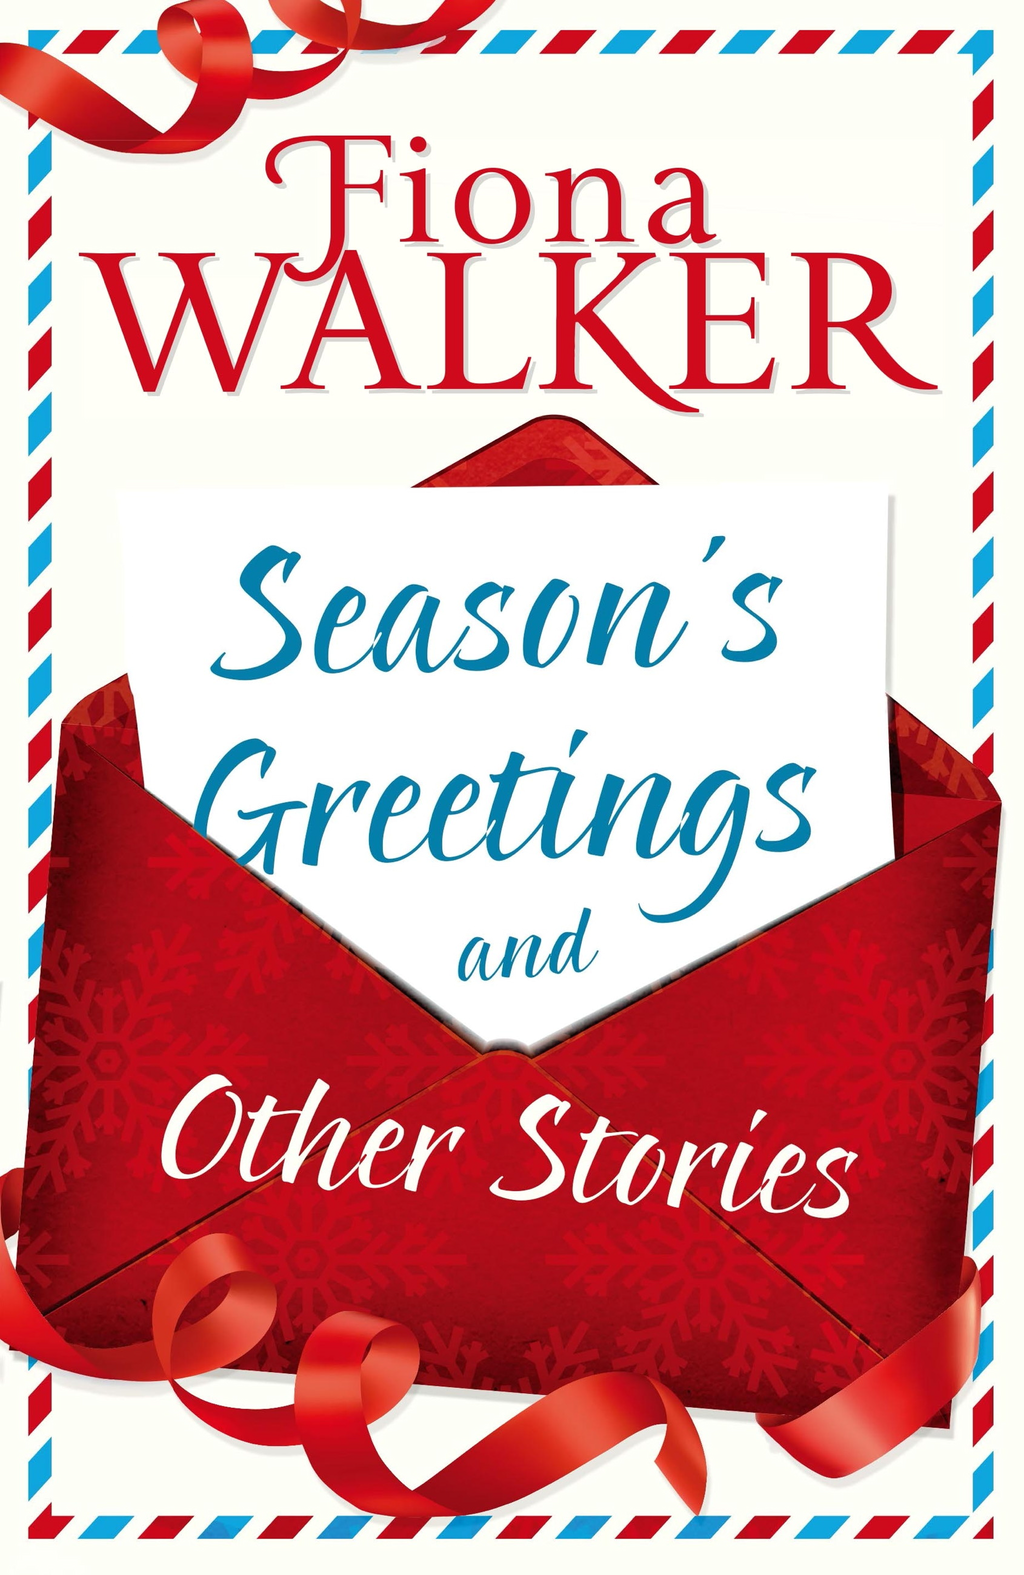 Season's Greetings and Other Stories